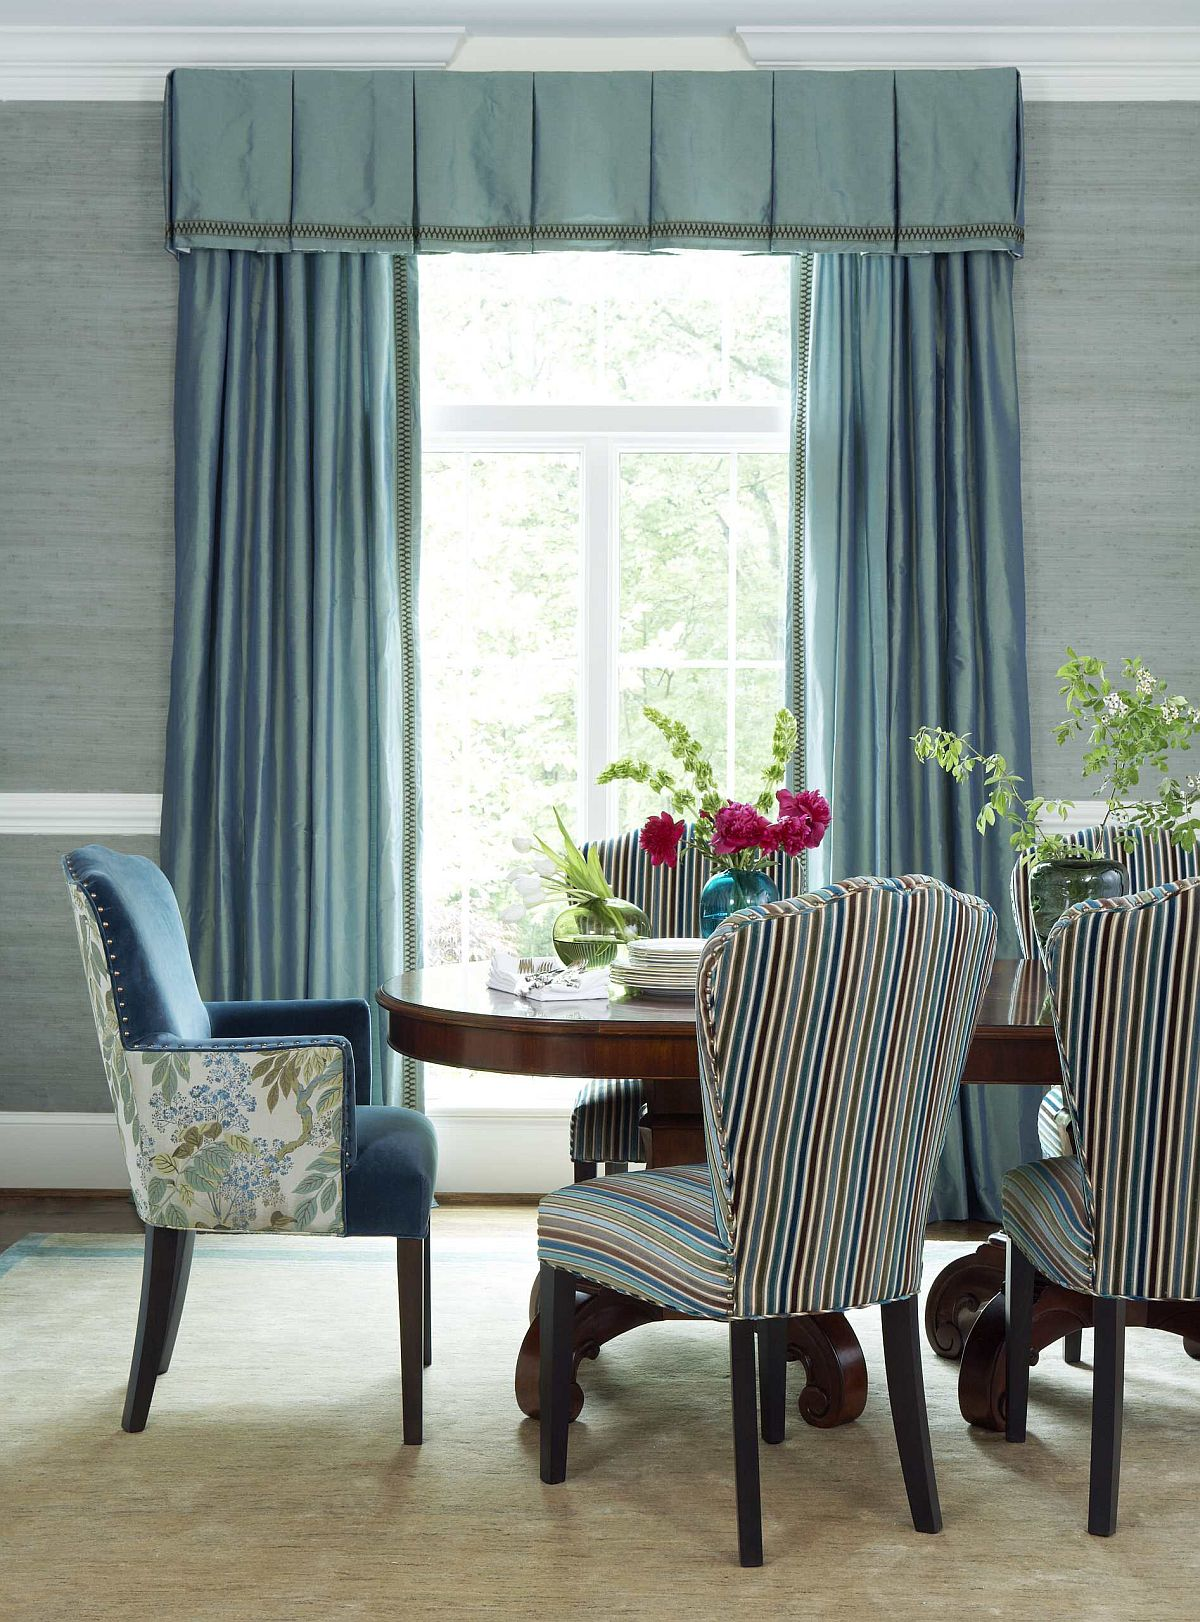 Stylish-striped-chairs-for-the-modern-dining-room-86826